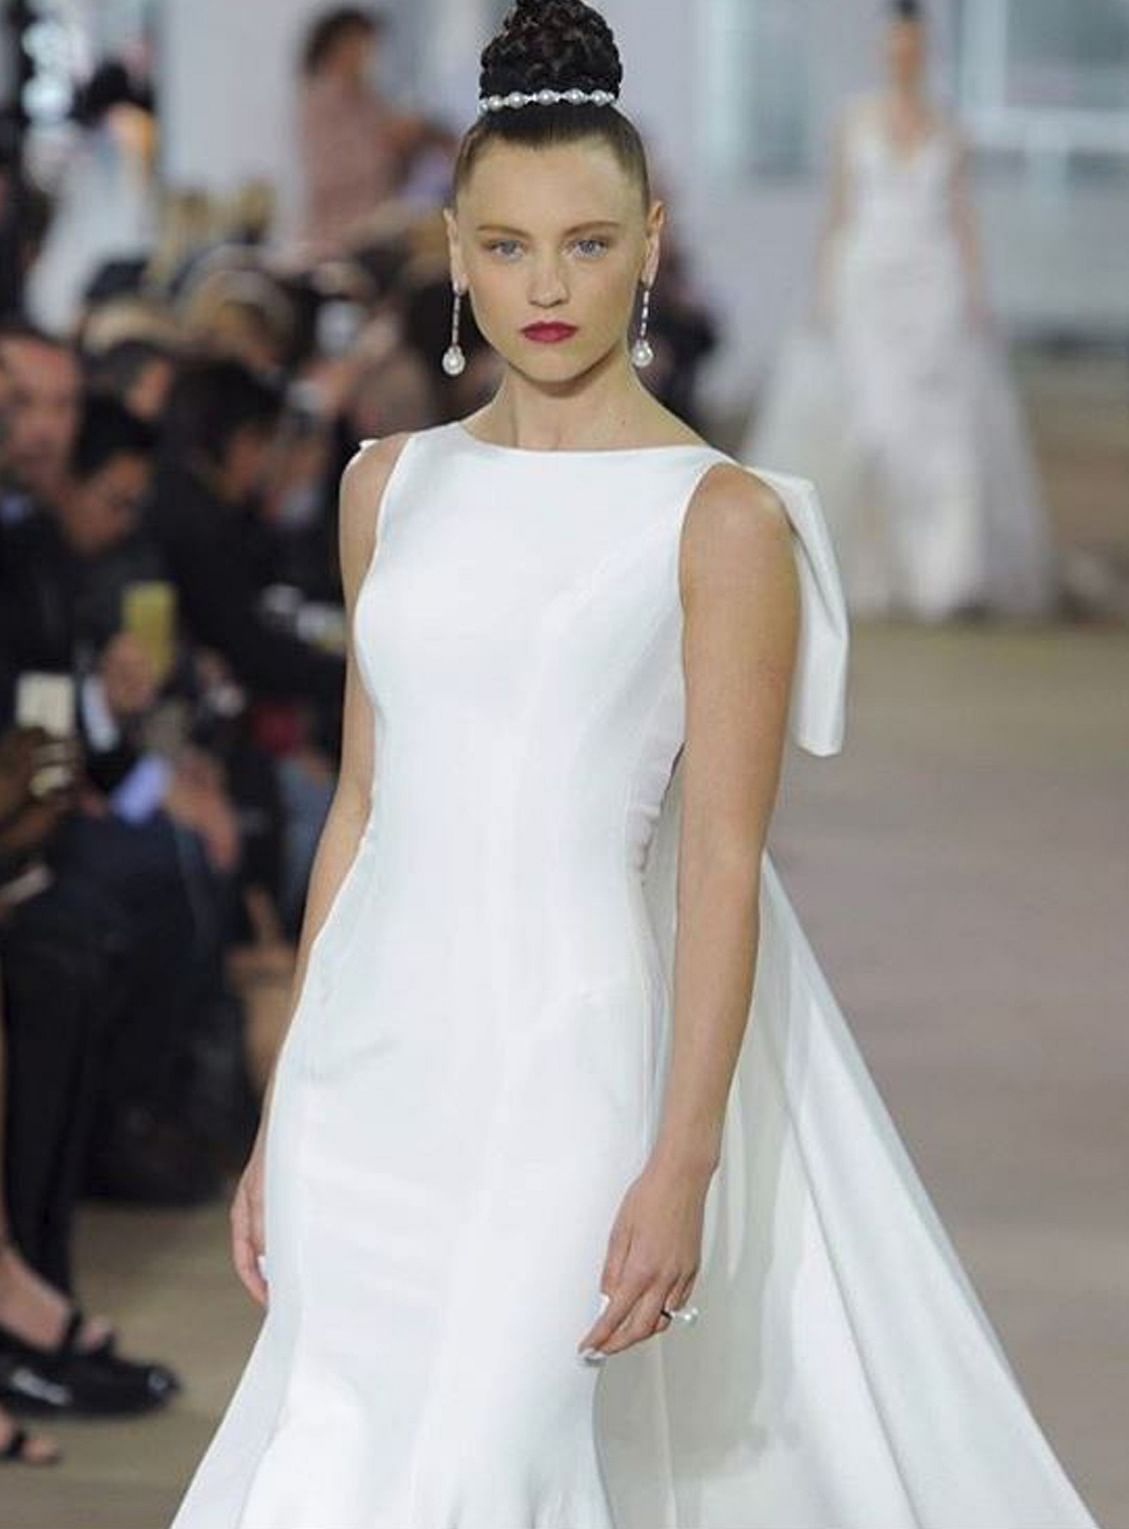 Tuxedo cape with interior sleeves and fitted A-line skirt by Vera Wang. Pared-down, modestly cut bridal gown by Ines Di Santo.